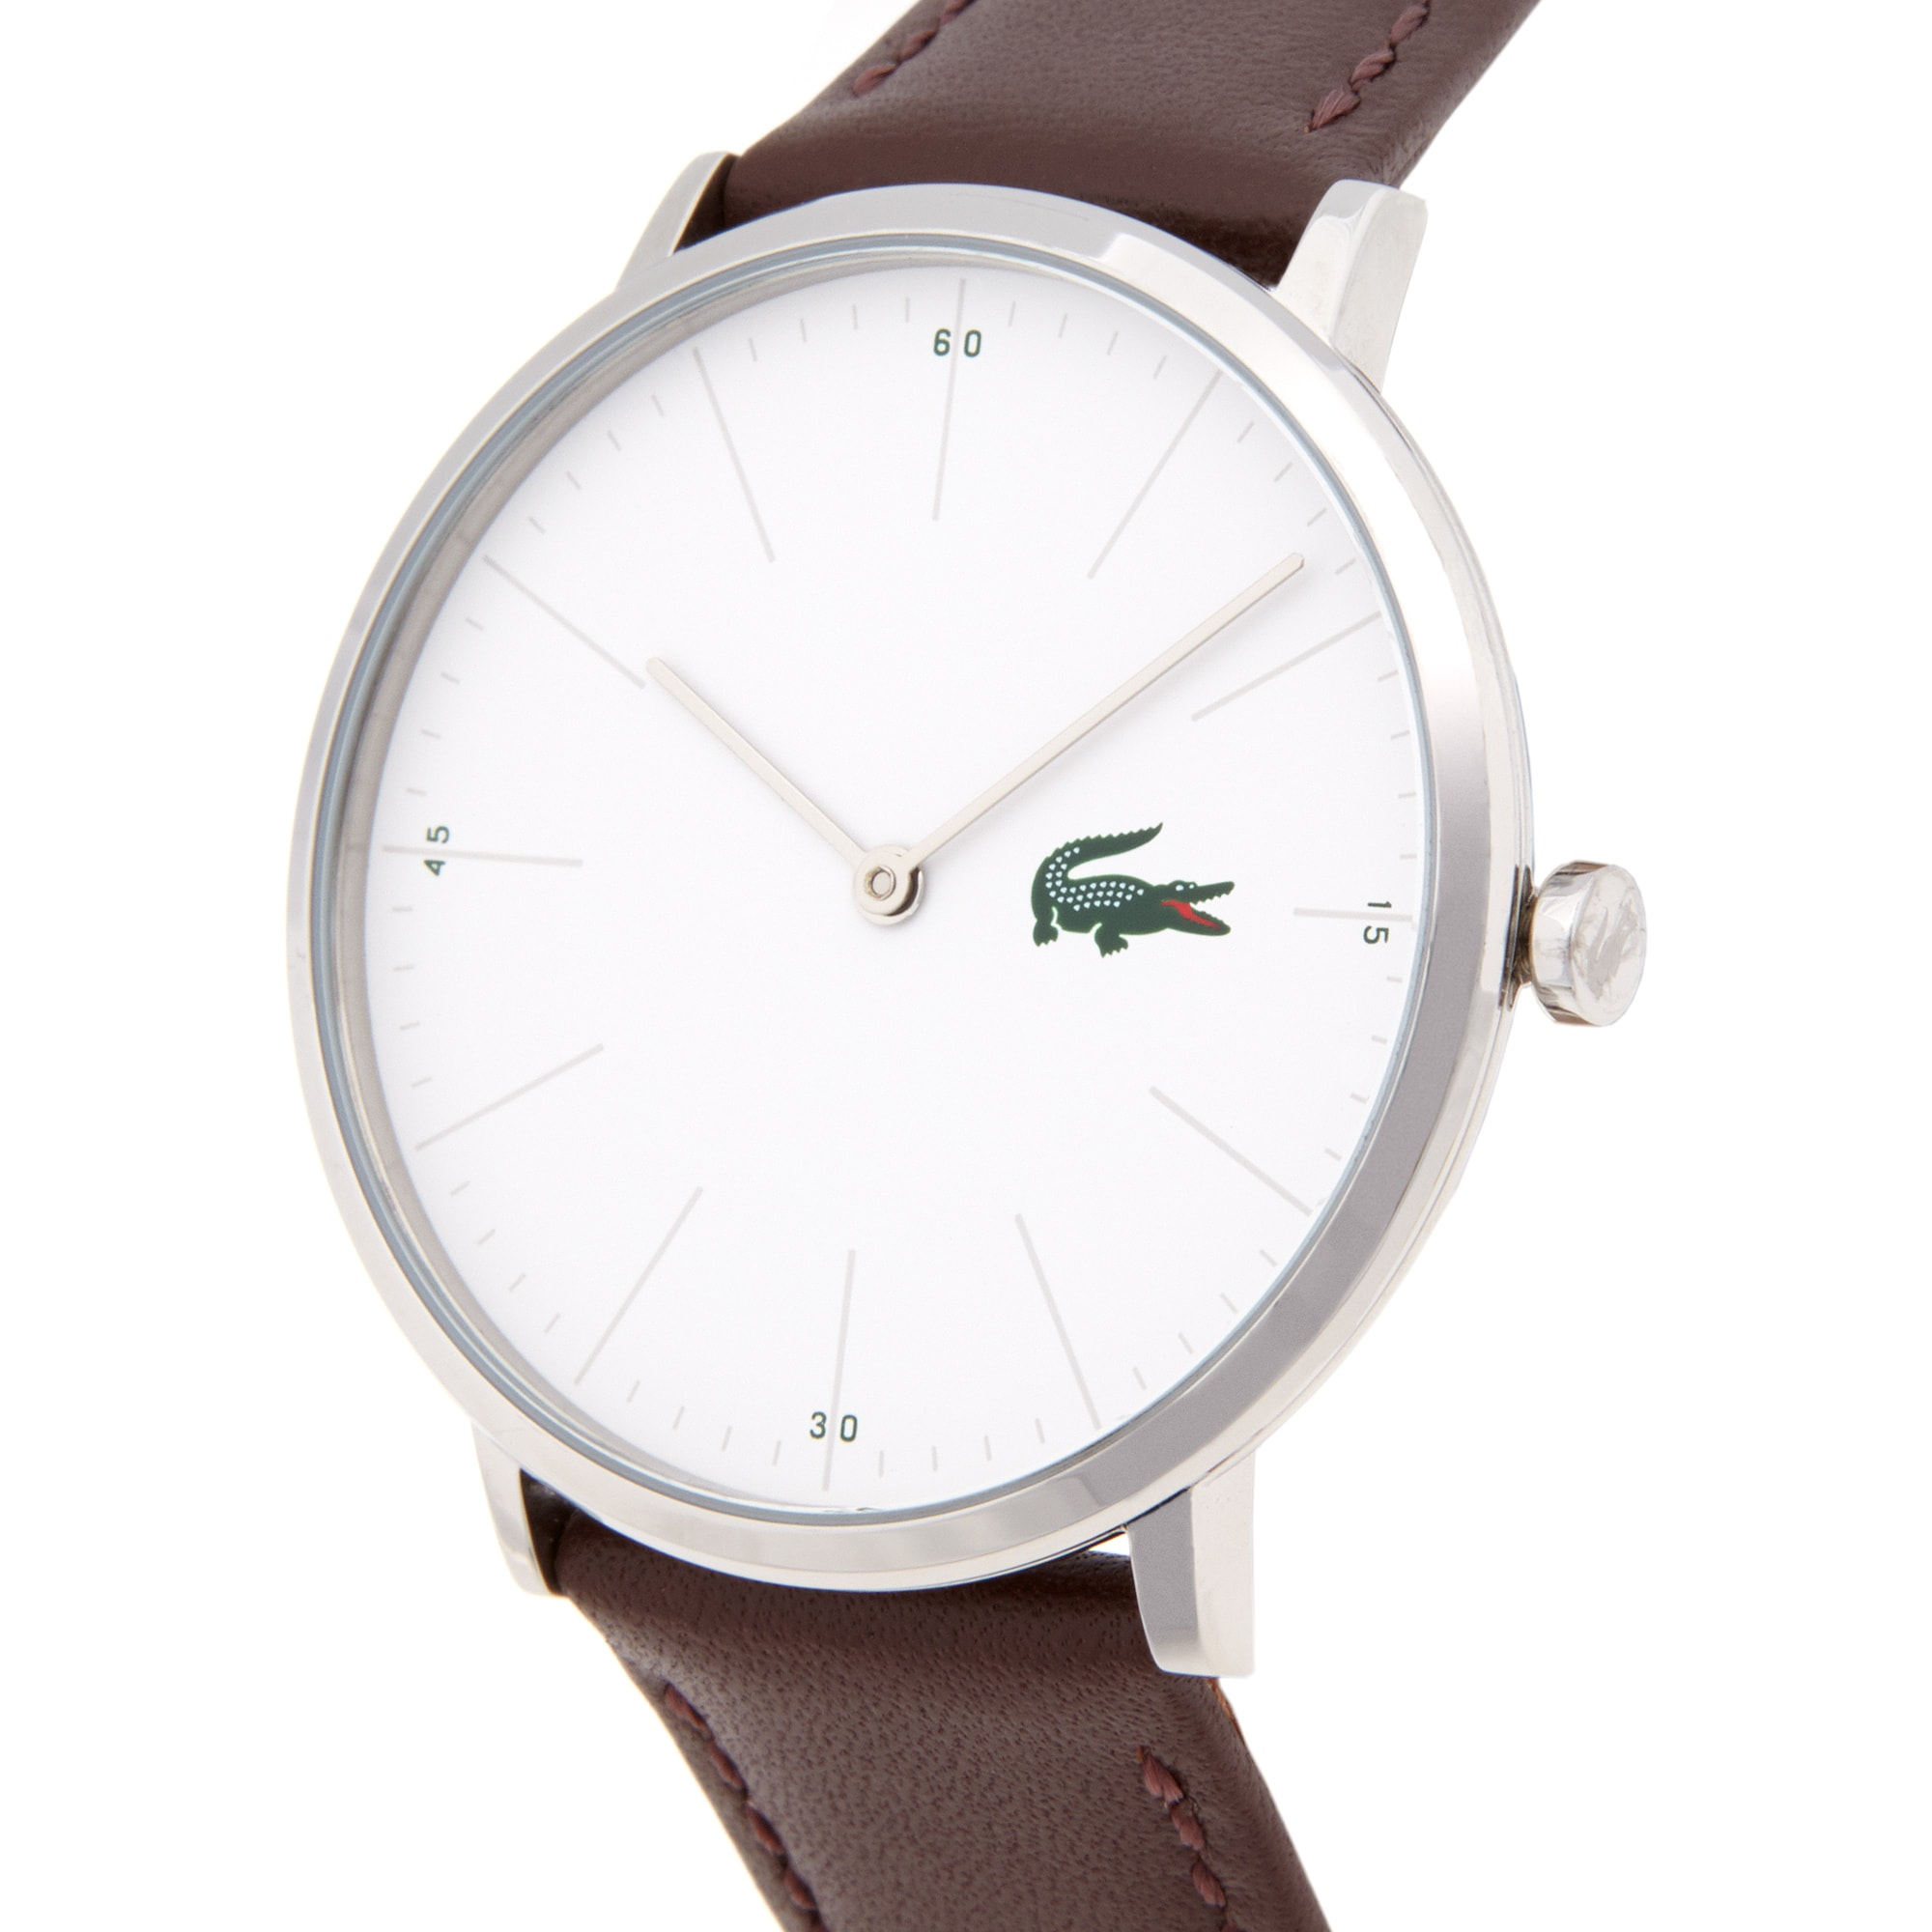 Montre Moon Homme Ultrafine avec Bracelet Marron en Cuir